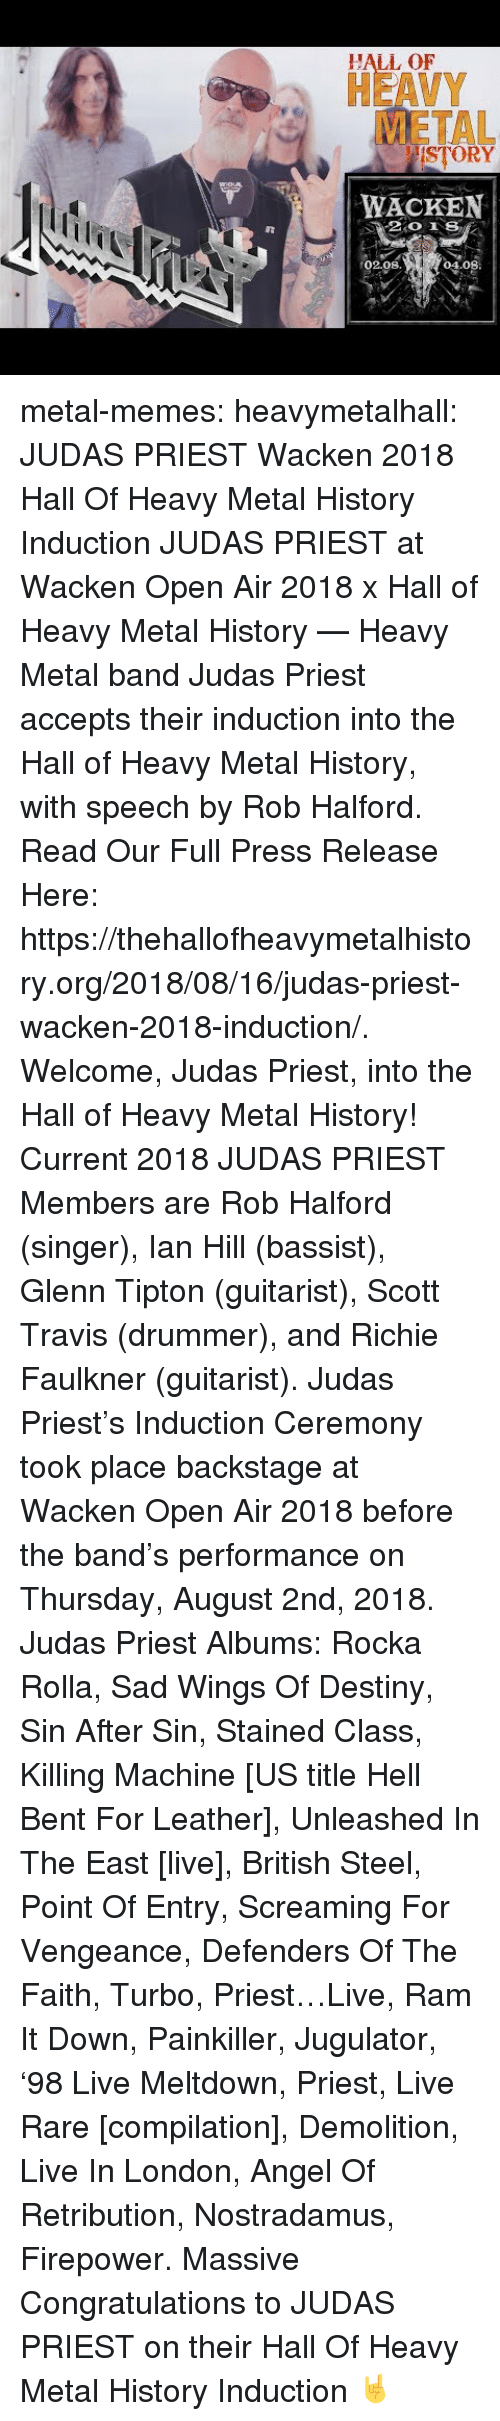 Glenn: HALL OF  HEAVY  METAL  ISTORY  WACKEN  02.08  04.08 metal-memes:  heavymetalhall:  JUDAS PRIEST Wacken 2018 Hall Of Heavy Metal History Induction JUDAS PRIEST at Wacken Open Air 2018 x Hall of Heavy Metal History — Heavy Metal band Judas Priest accepts their induction into the Hall of Heavy Metal History, with speech by Rob Halford.   Read Our Full Press Release Here: https://thehallofheavymetalhistory.org/2018/08/16/judas-priest-wacken-2018-induction/.   Welcome, Judas Priest, into the Hall of Heavy Metal History!   Current 2018 JUDAS PRIEST Members are Rob Halford (singer), Ian Hill (bassist), Glenn Tipton (guitarist), Scott Travis (drummer), and Richie Faulkner (guitarist).  Judas Priest's Induction Ceremony took place backstage at Wacken Open Air 2018 before the band's performance on Thursday, August 2nd, 2018.   Judas Priest Albums: Rocka Rolla, Sad Wings Of Destiny, Sin After Sin, Stained Class, Killing Machine [US title Hell Bent For Leather], Unleashed In The East [live], British Steel, Point Of Entry, Screaming For Vengeance, Defenders Of The Faith, Turbo, Priest…Live, Ram It Down, Painkiller, Jugulator, '98 Live Meltdown, Priest, Live  Rare [compilation], Demolition, Live In London, Angel Of Retribution, Nostradamus, Firepower.  Massive Congratulations to JUDAS PRIEST on their Hall Of Heavy Metal History Induction 🤘